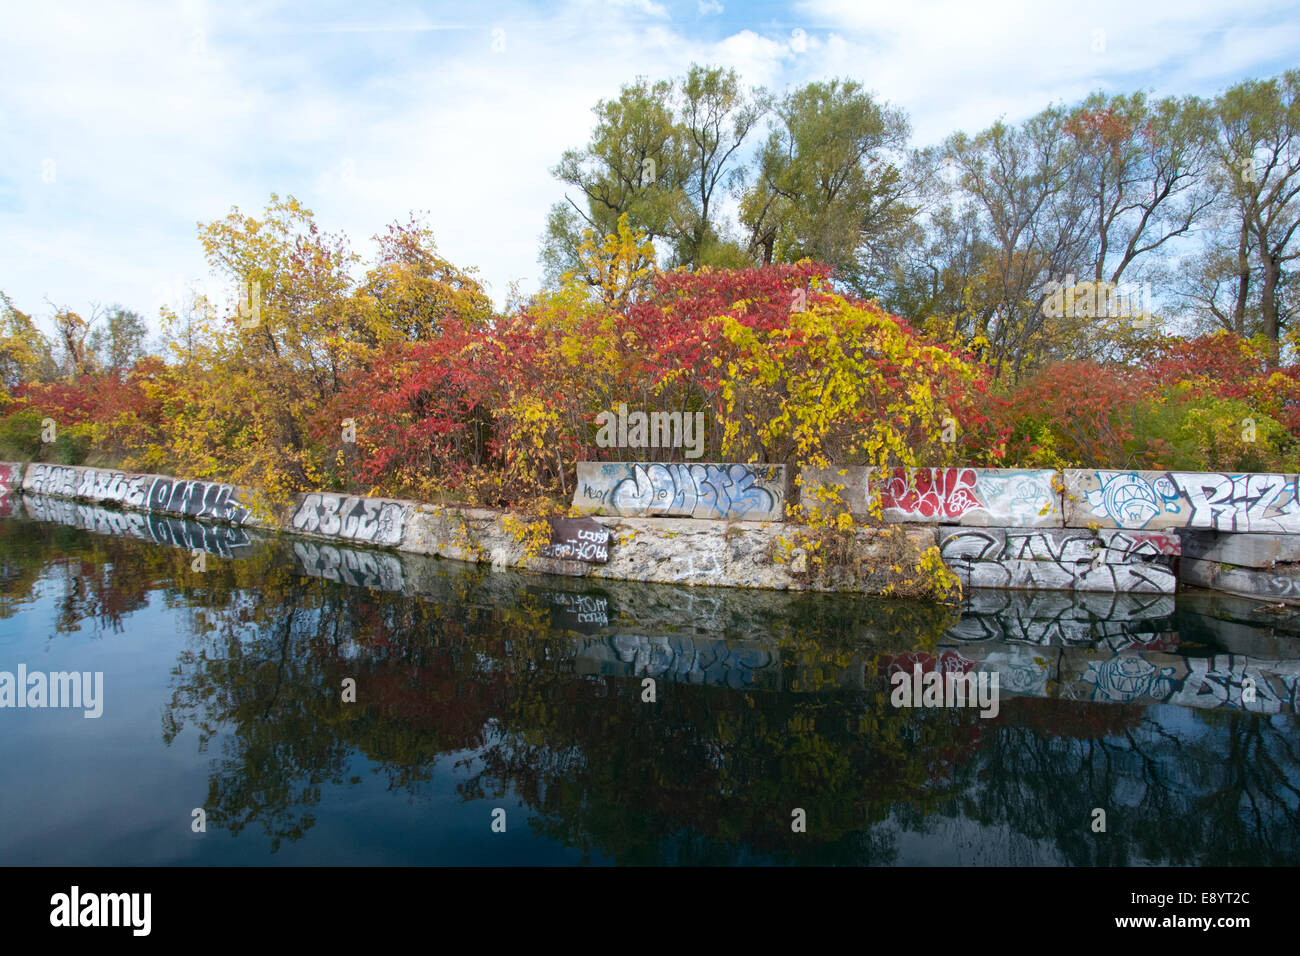 The blight of graffiti at the Soulange Canal, Quebec. - Stock Image